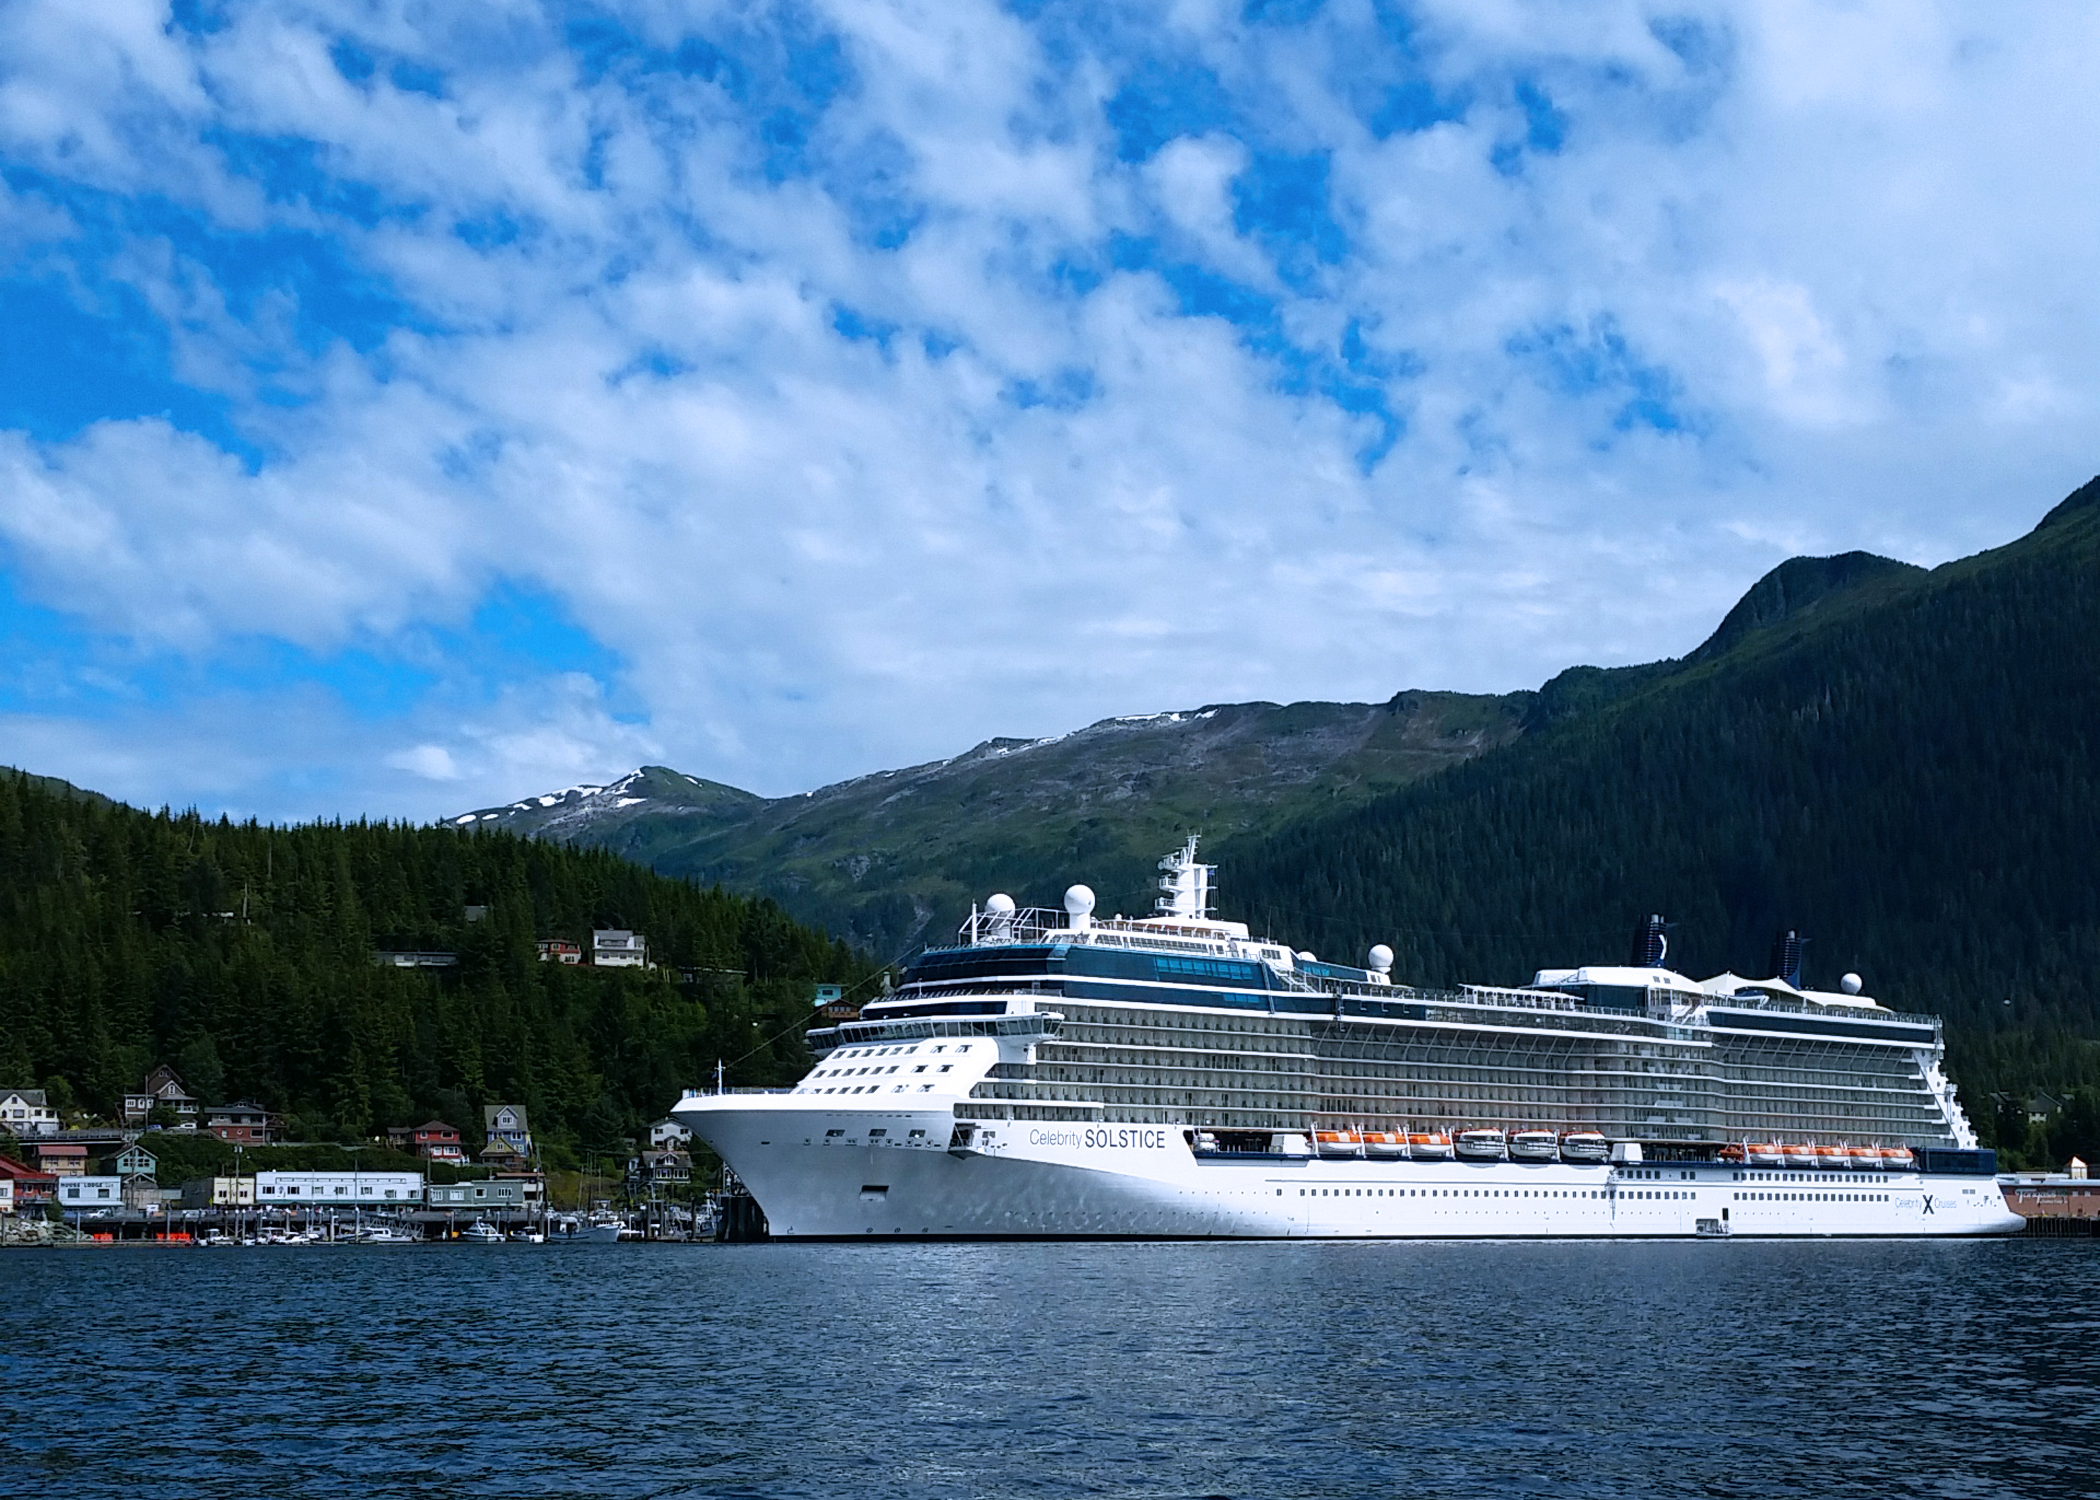 The Celebrity Solstice at the dock in Ketchikan, Alaska